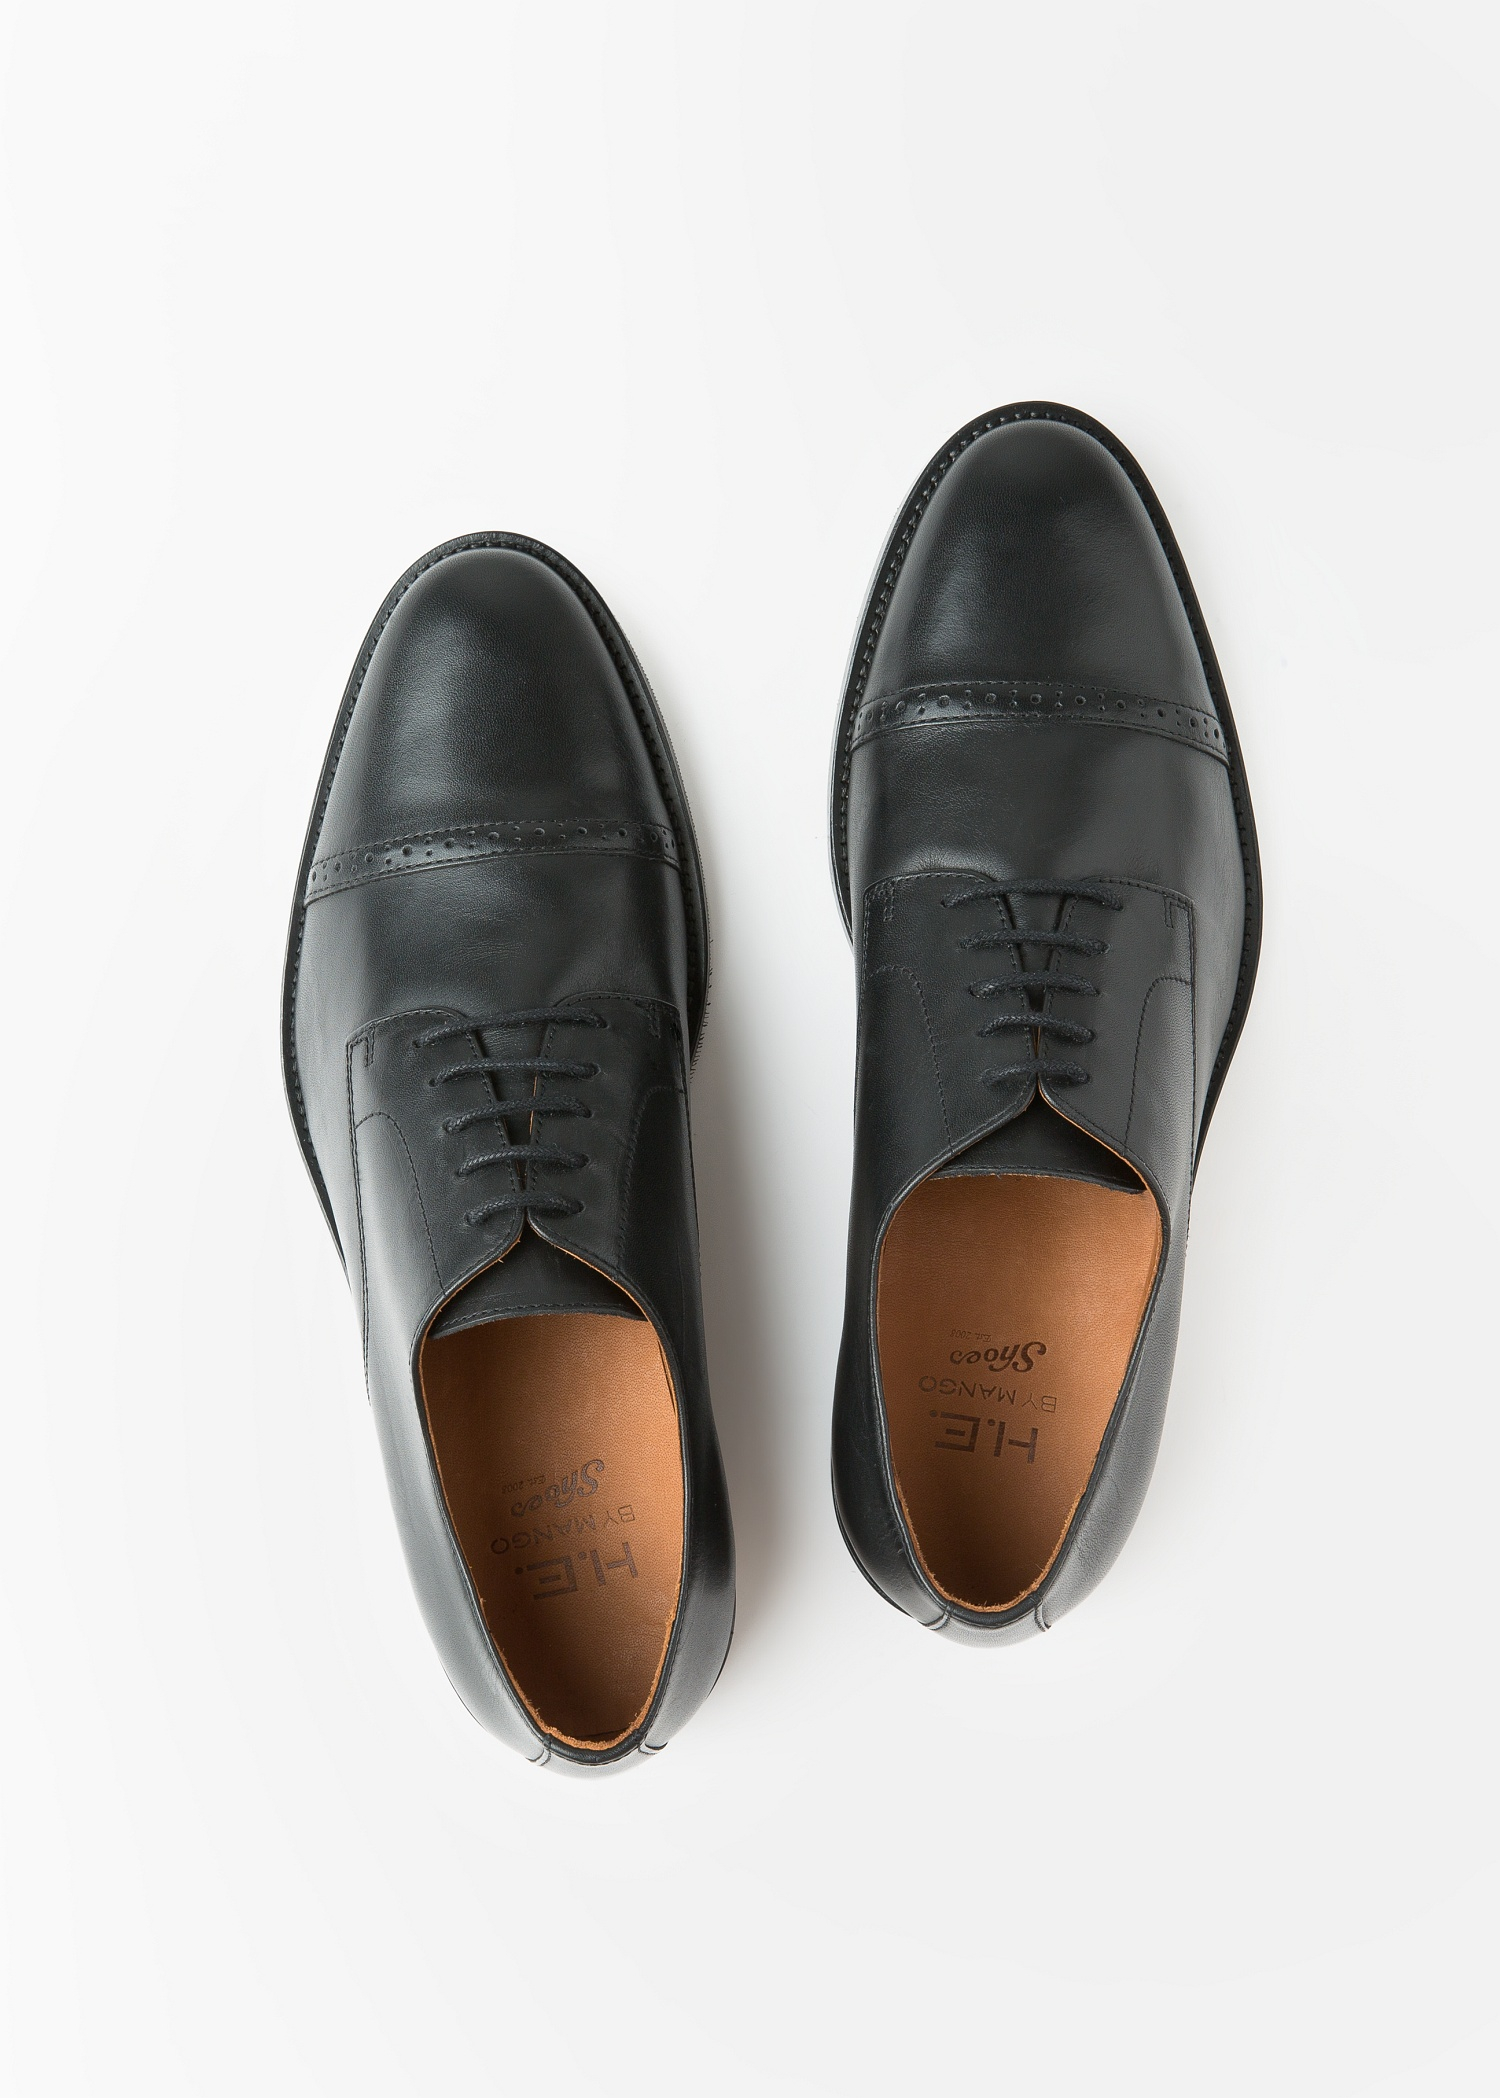 MANGO Leather Oxford shoes EvPKID